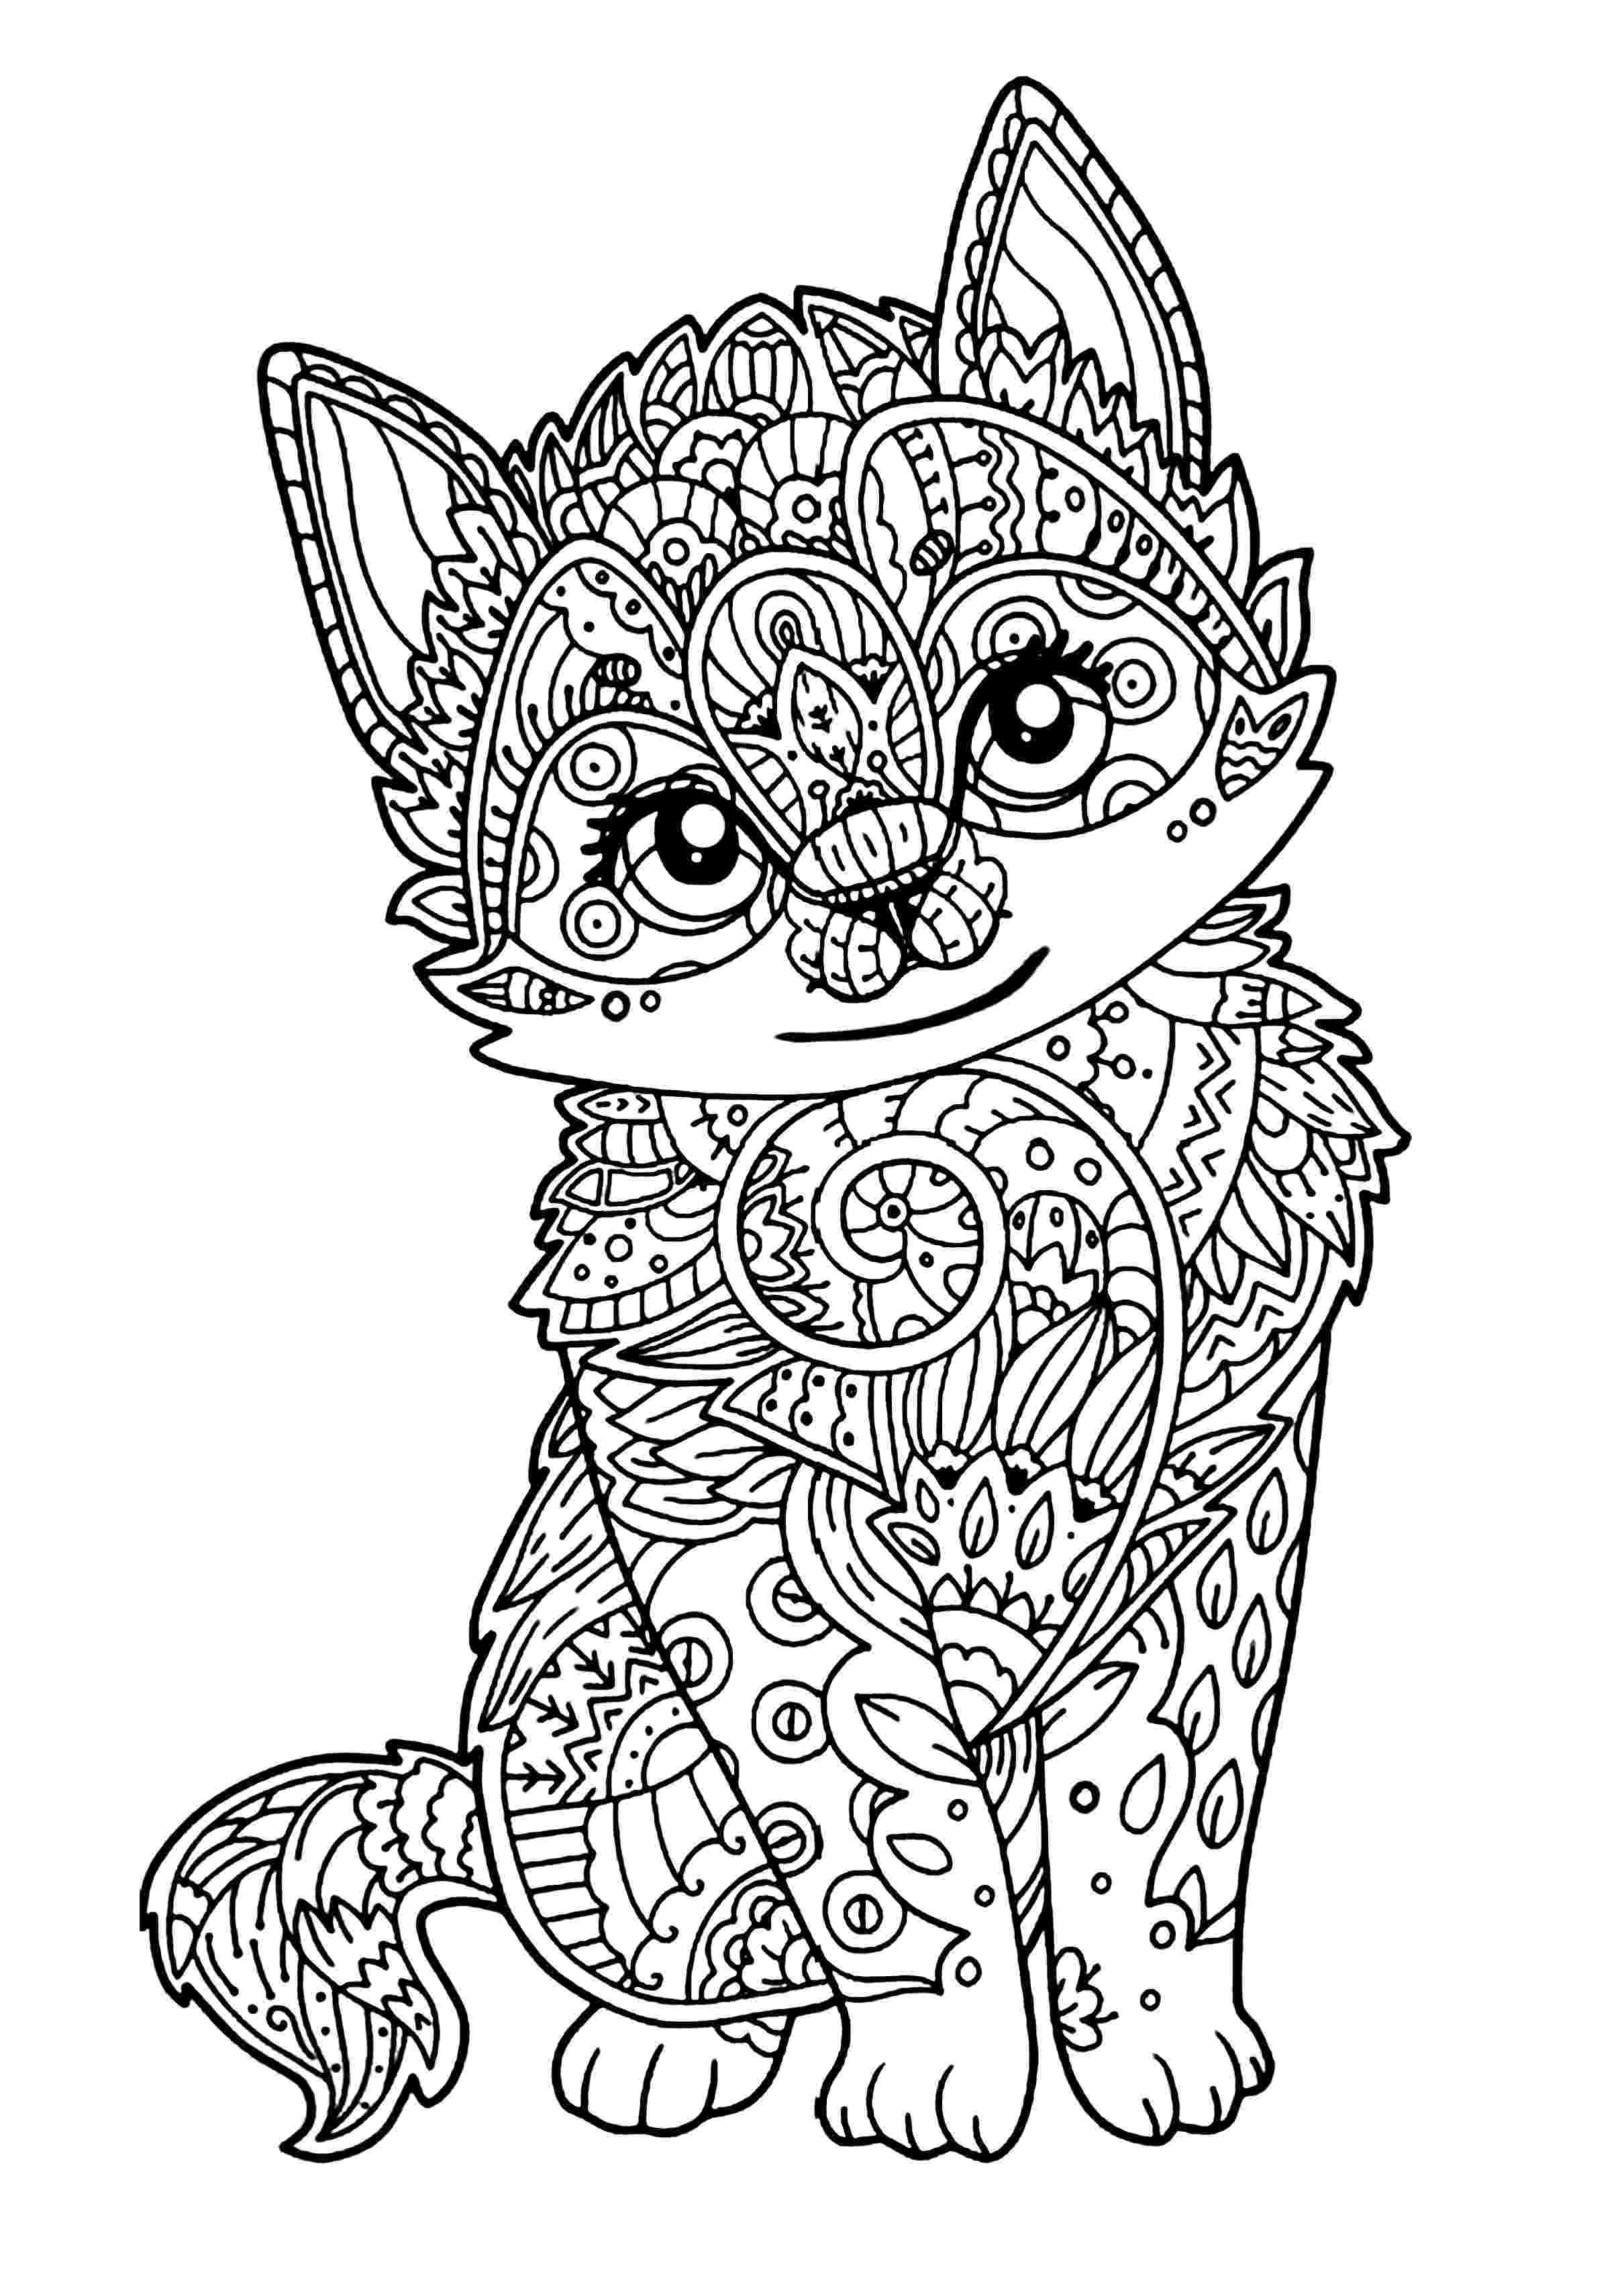 coloring pages for adults cute cute coloring pages best coloring pages for kids pages for coloring adults cute